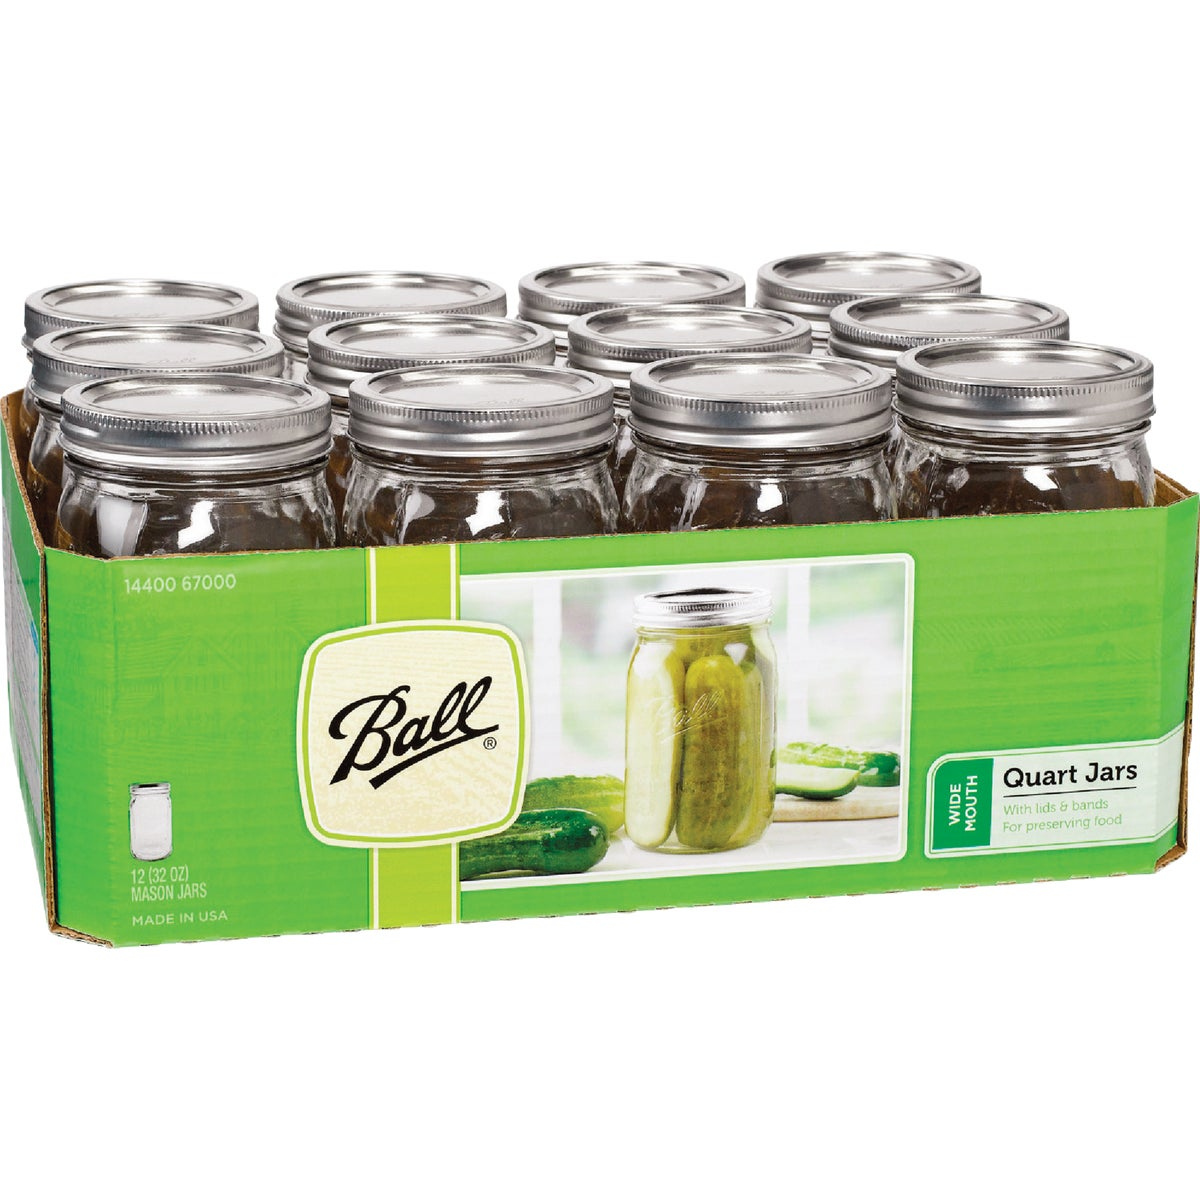 QUART 12CT W/M MASON JAR - 67000 by Jarden Home Brands